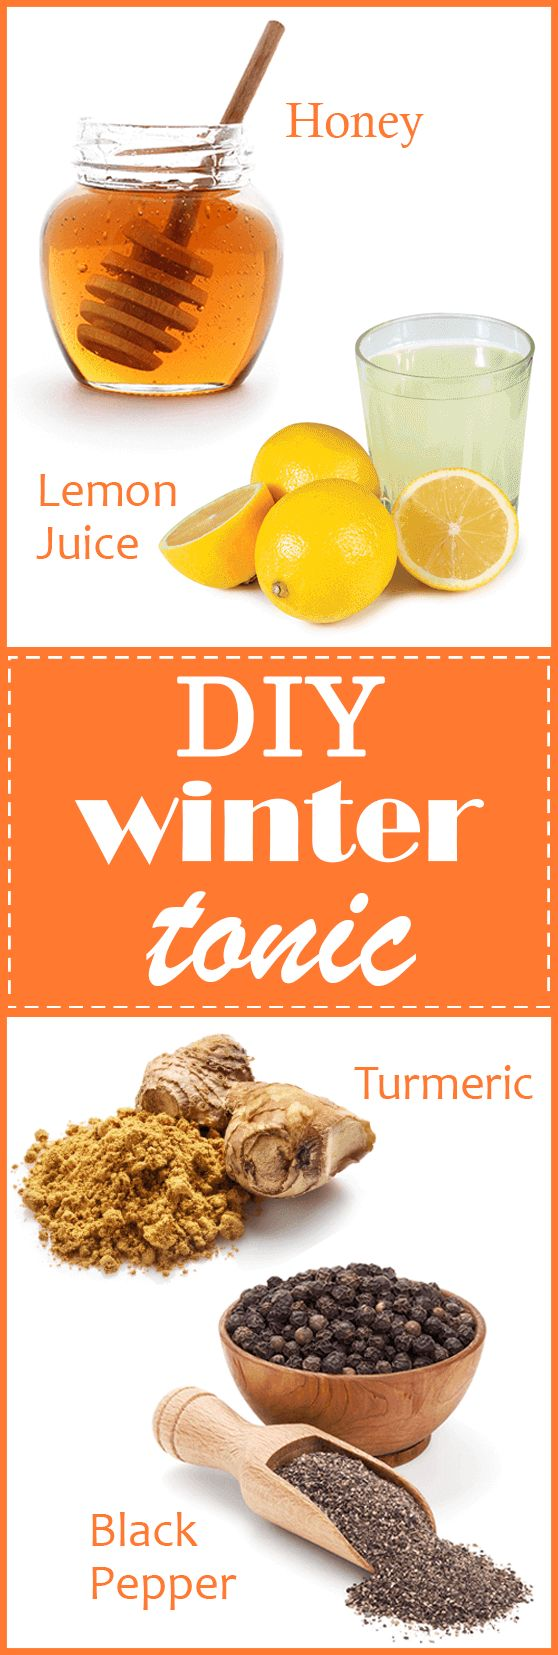 Hint: TONIC CAN STAND UP TO A FEW WEEKS IN THE FRIDGE, BUT STIR IT EVERY TIME BEFORE USE. #health #winter #tonic #home #honey #turmeric #lemon